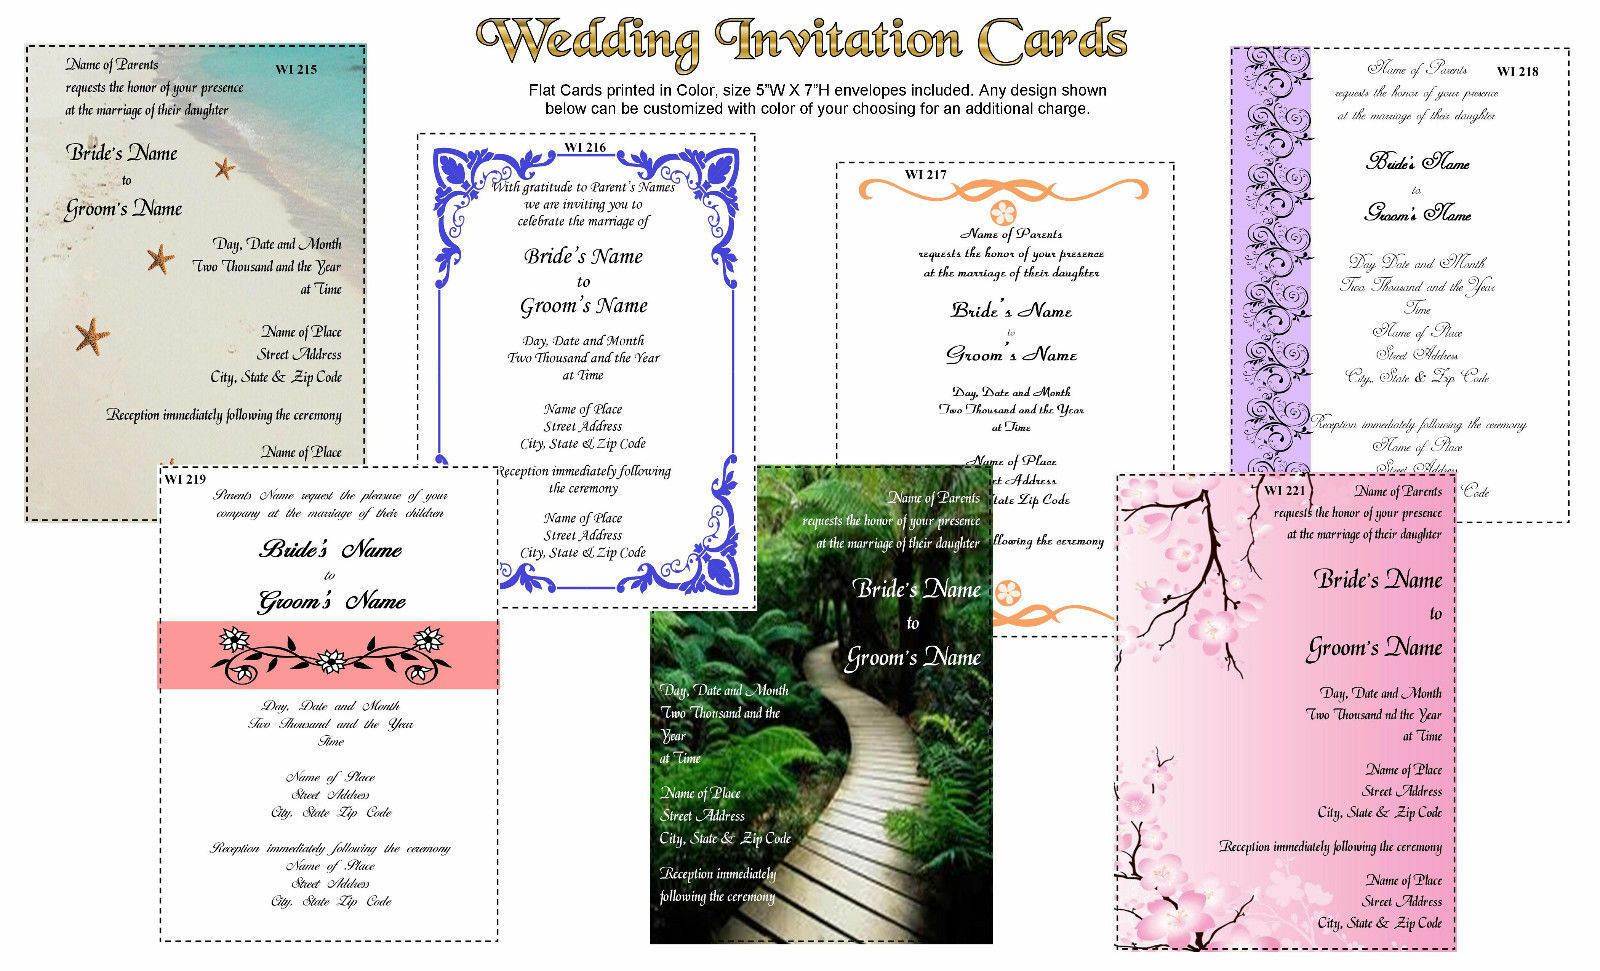 100 Party Invitation Printed in Farbe Graduation Flat Cards and Envelopes